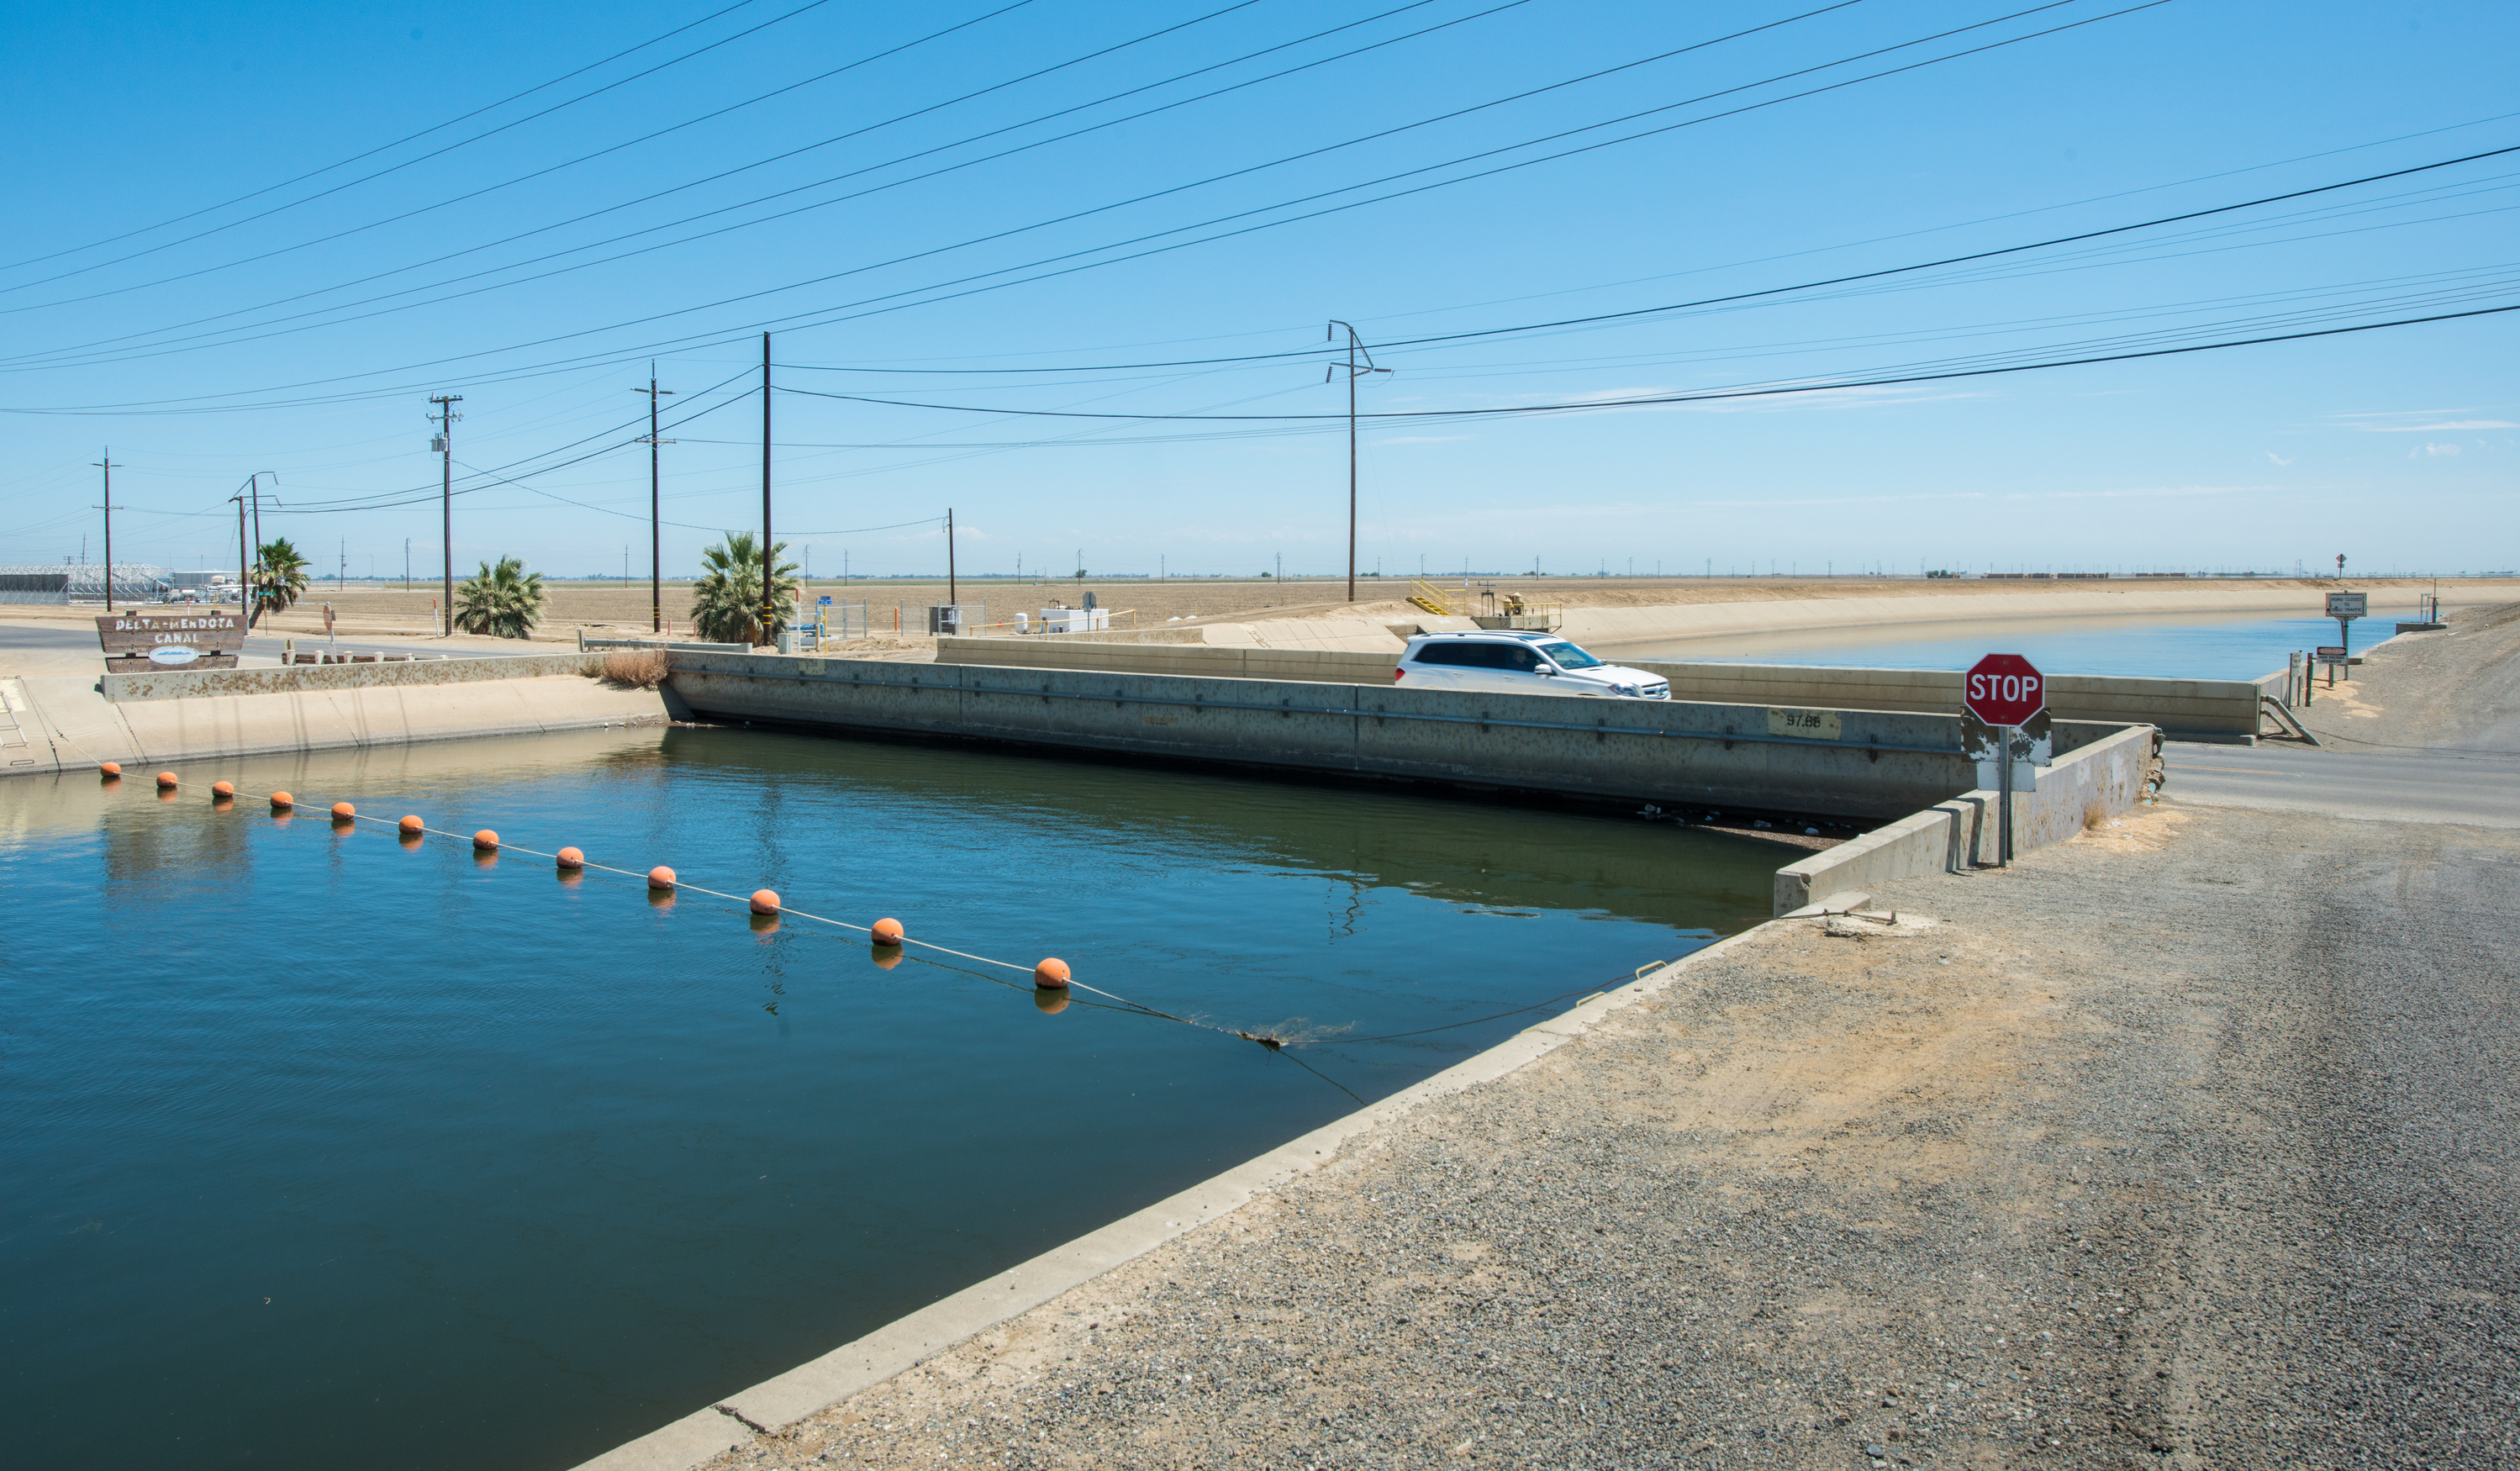 The Russell Avenue bridge, over the Delta Mendota Canal in Firebaugh, Calif., had subsided so much by last month that there's almost no space between the bottom of the bridge and the water. Repairs are estimated at roughly $2.5 million.